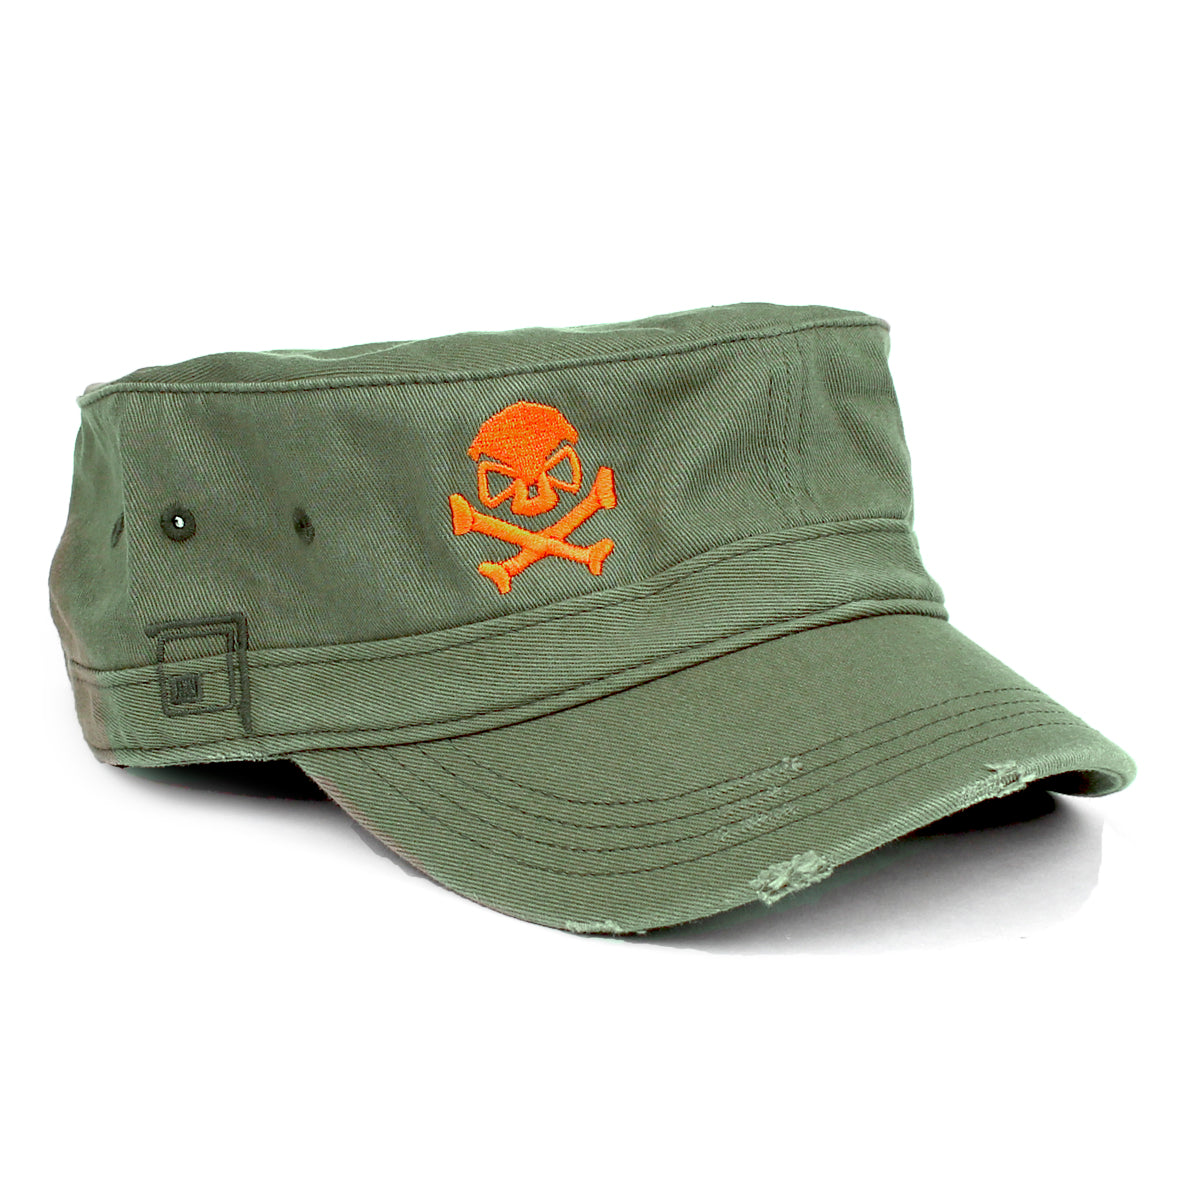 Cadet Cap - Olive/Orange - Hats - Pipe Hitters Union